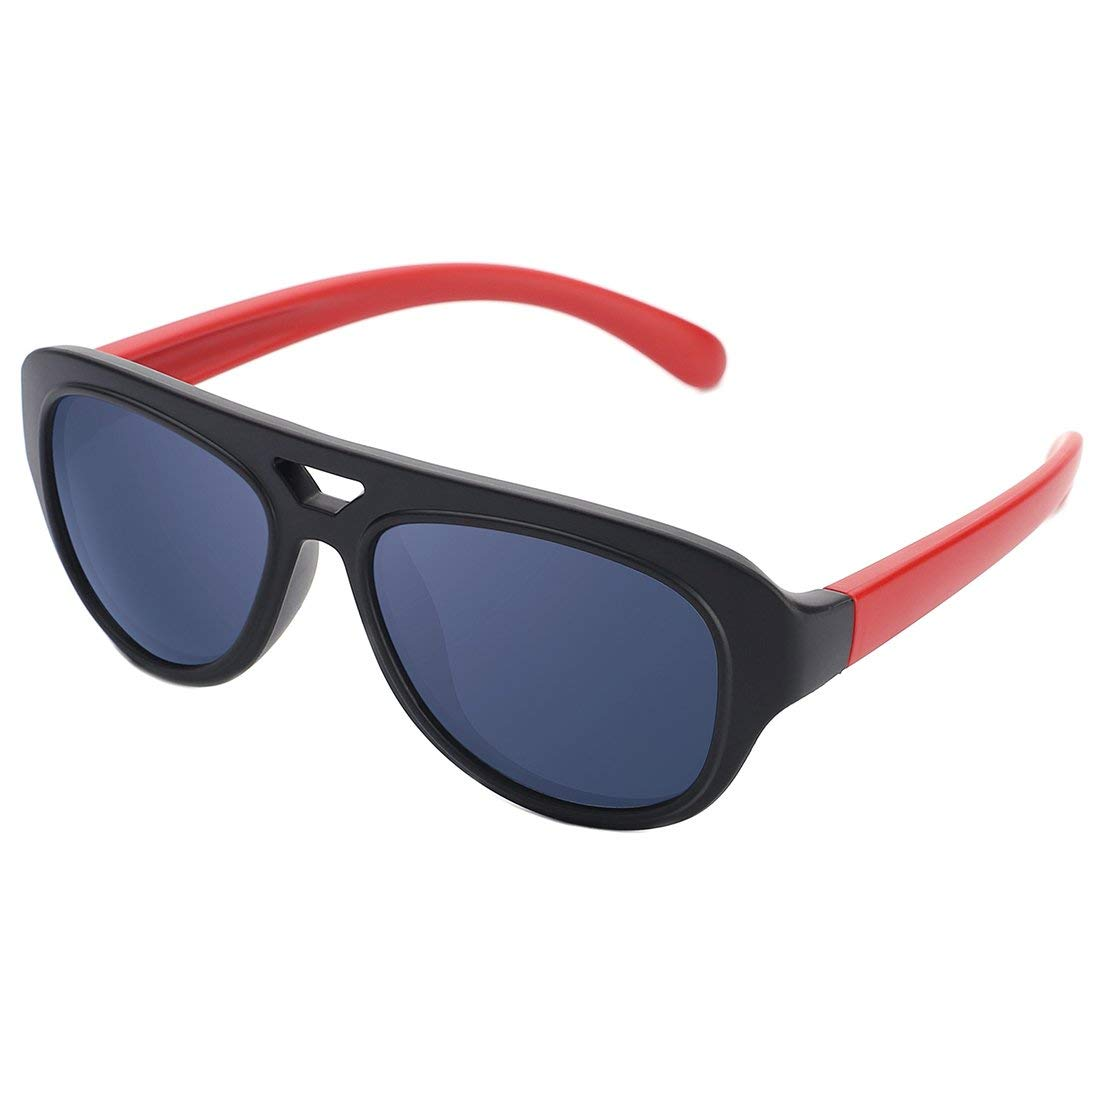 modesoda Kids Classic Polarized Sunglasses Silicon Frame for Girls and Boys Children Age 3-12